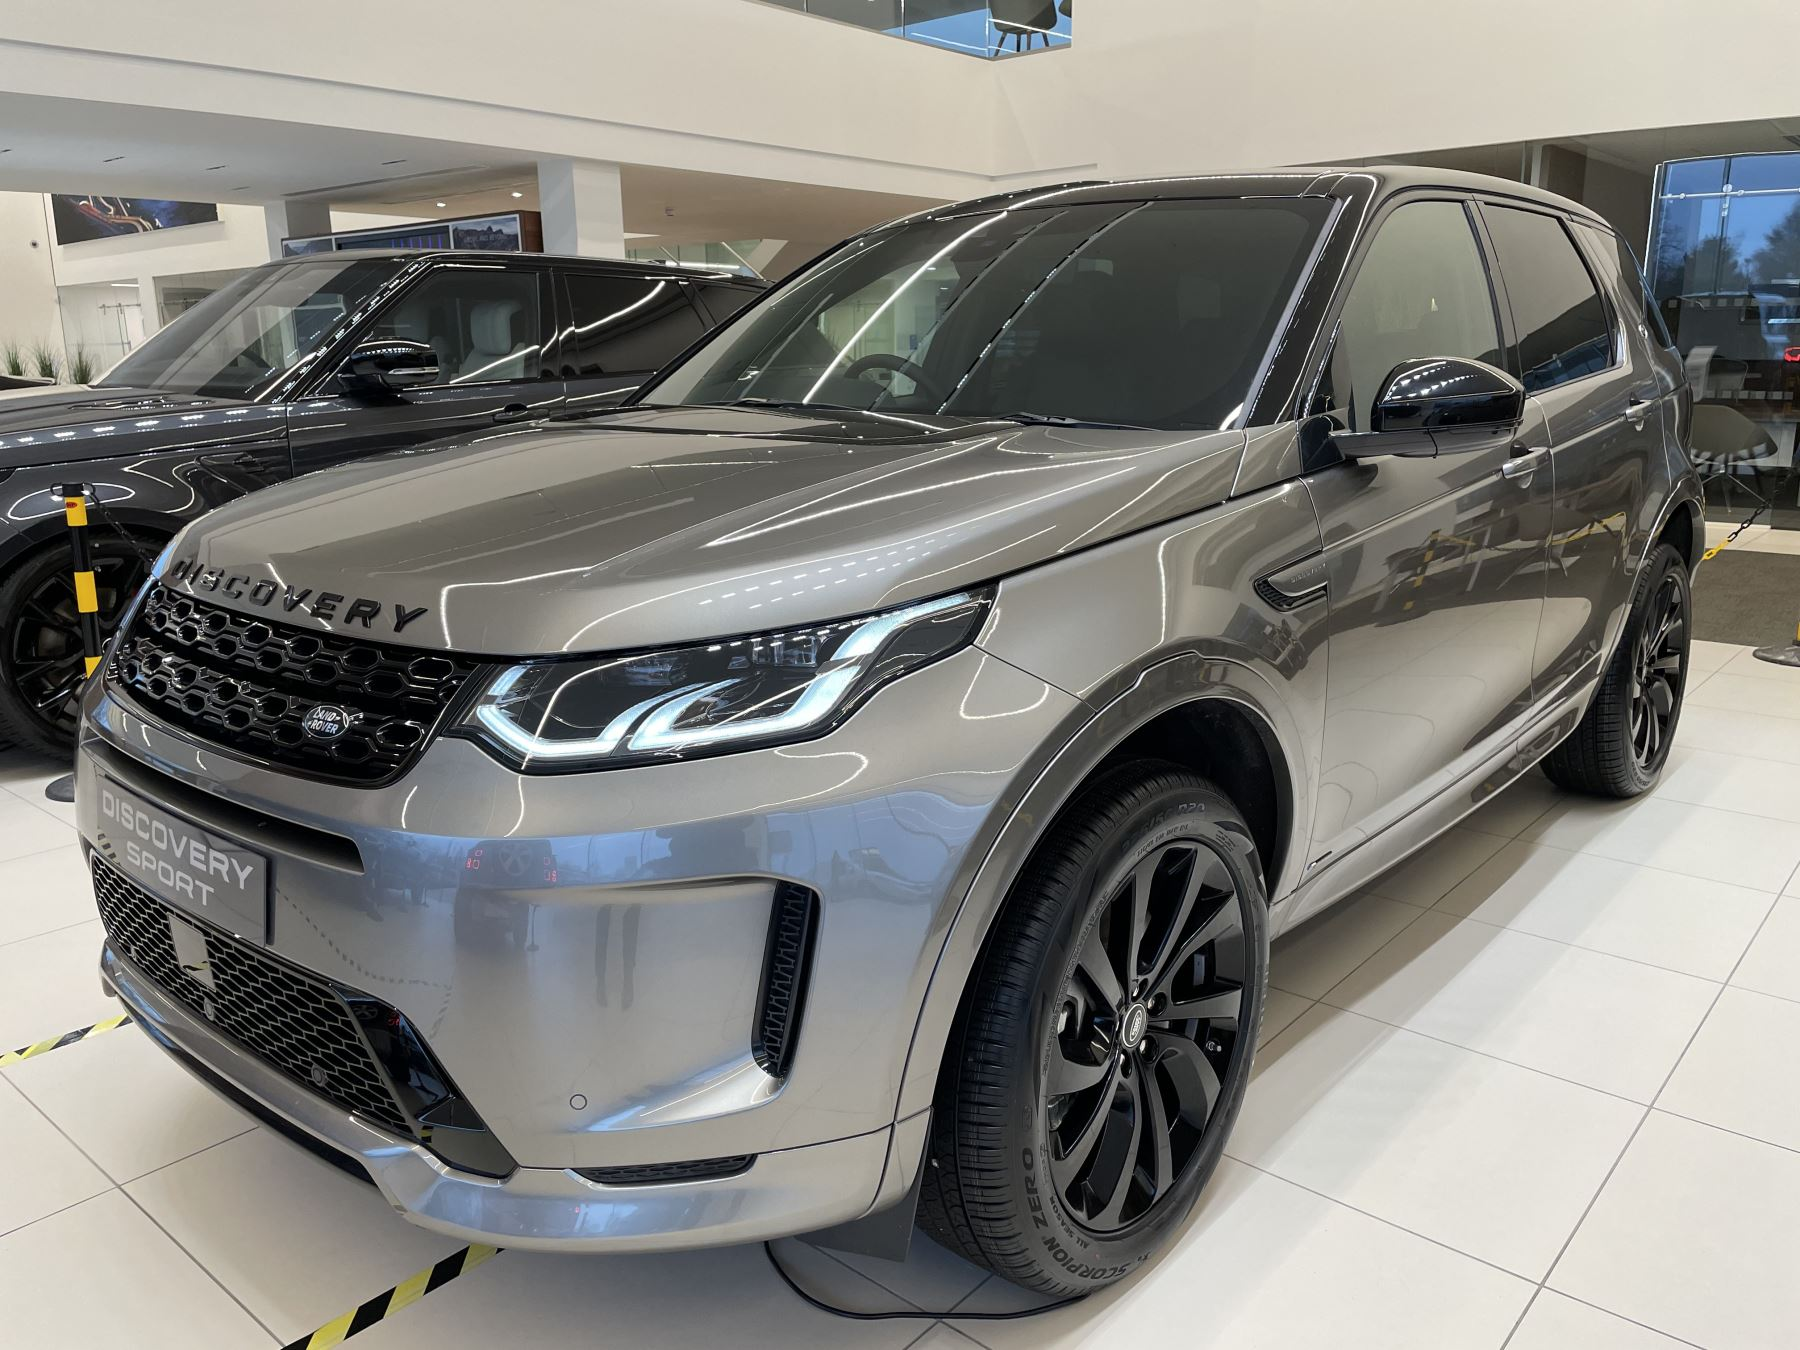 Land Rover Discovery Sport 2.0 P250 R-Dynamic HSE image 5